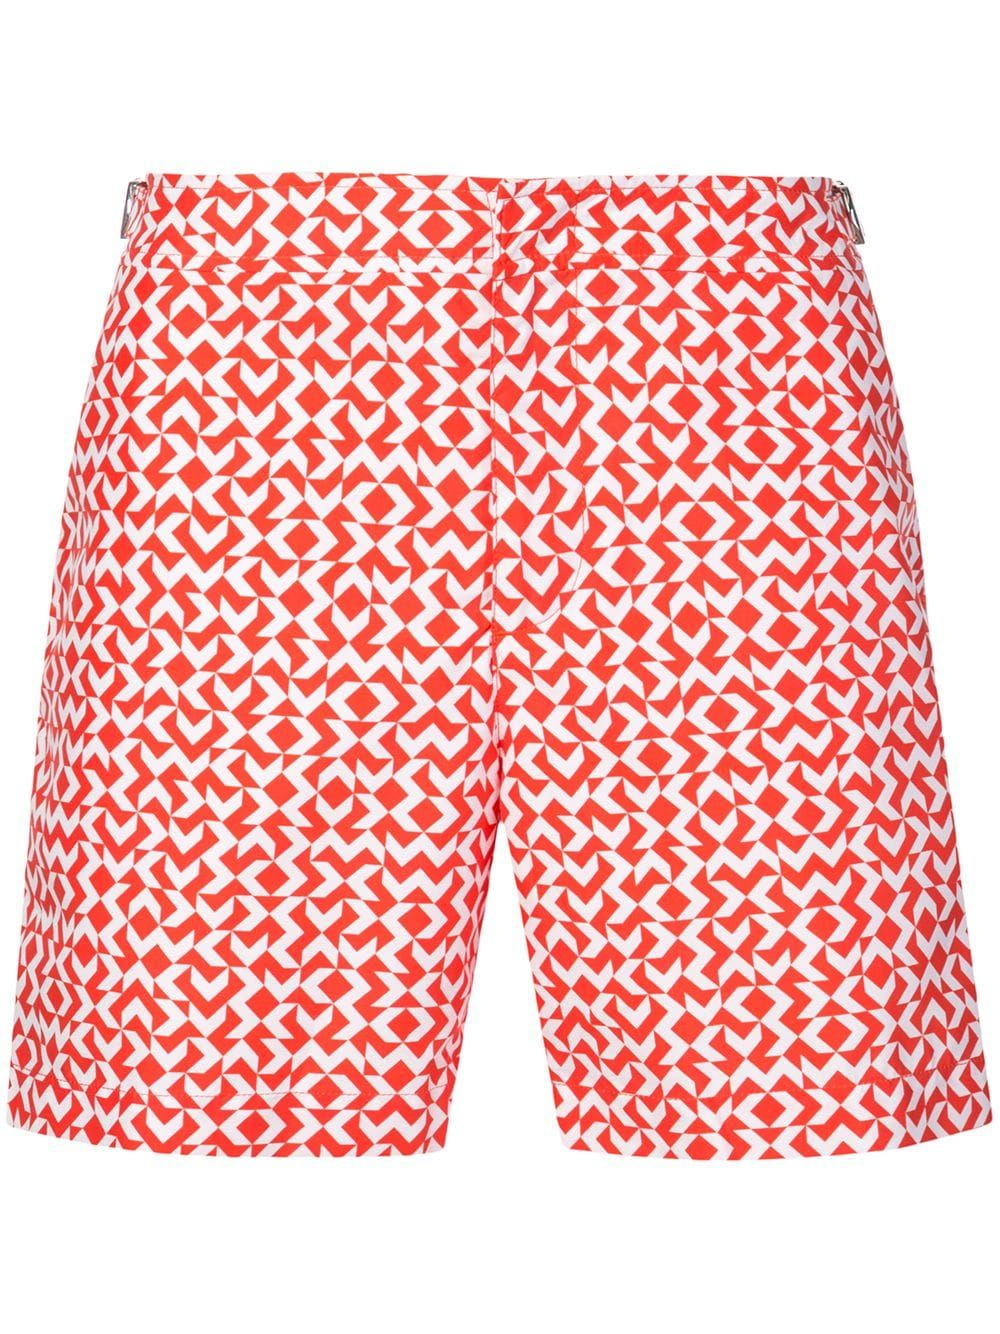 1b3b780e7c ORLEBAR BROWN ORLEBAR BROWN GEOMETRIC PATTERN SWIM SHORTS - RED. # orlebarbrown #cloth